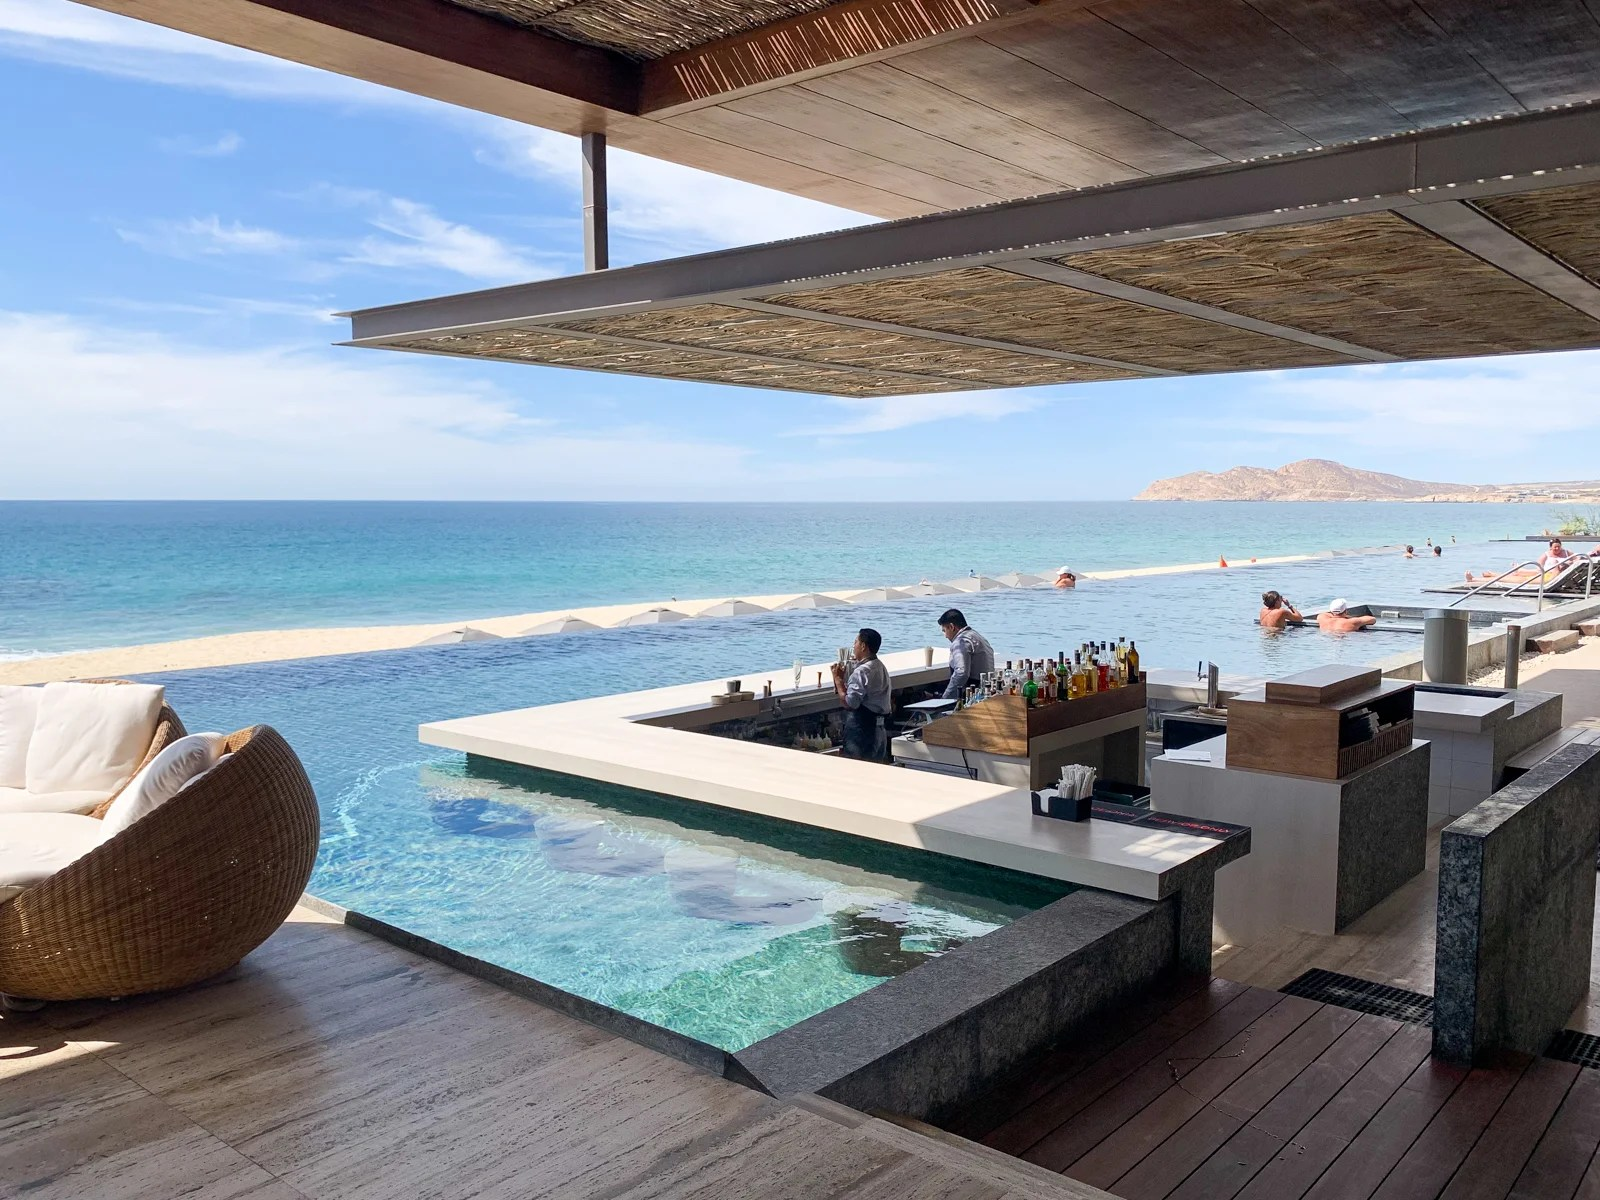 Solaz, So Good: A Review of Solaz, a Luxury Collection Hotel in Los Cabos, Mexico